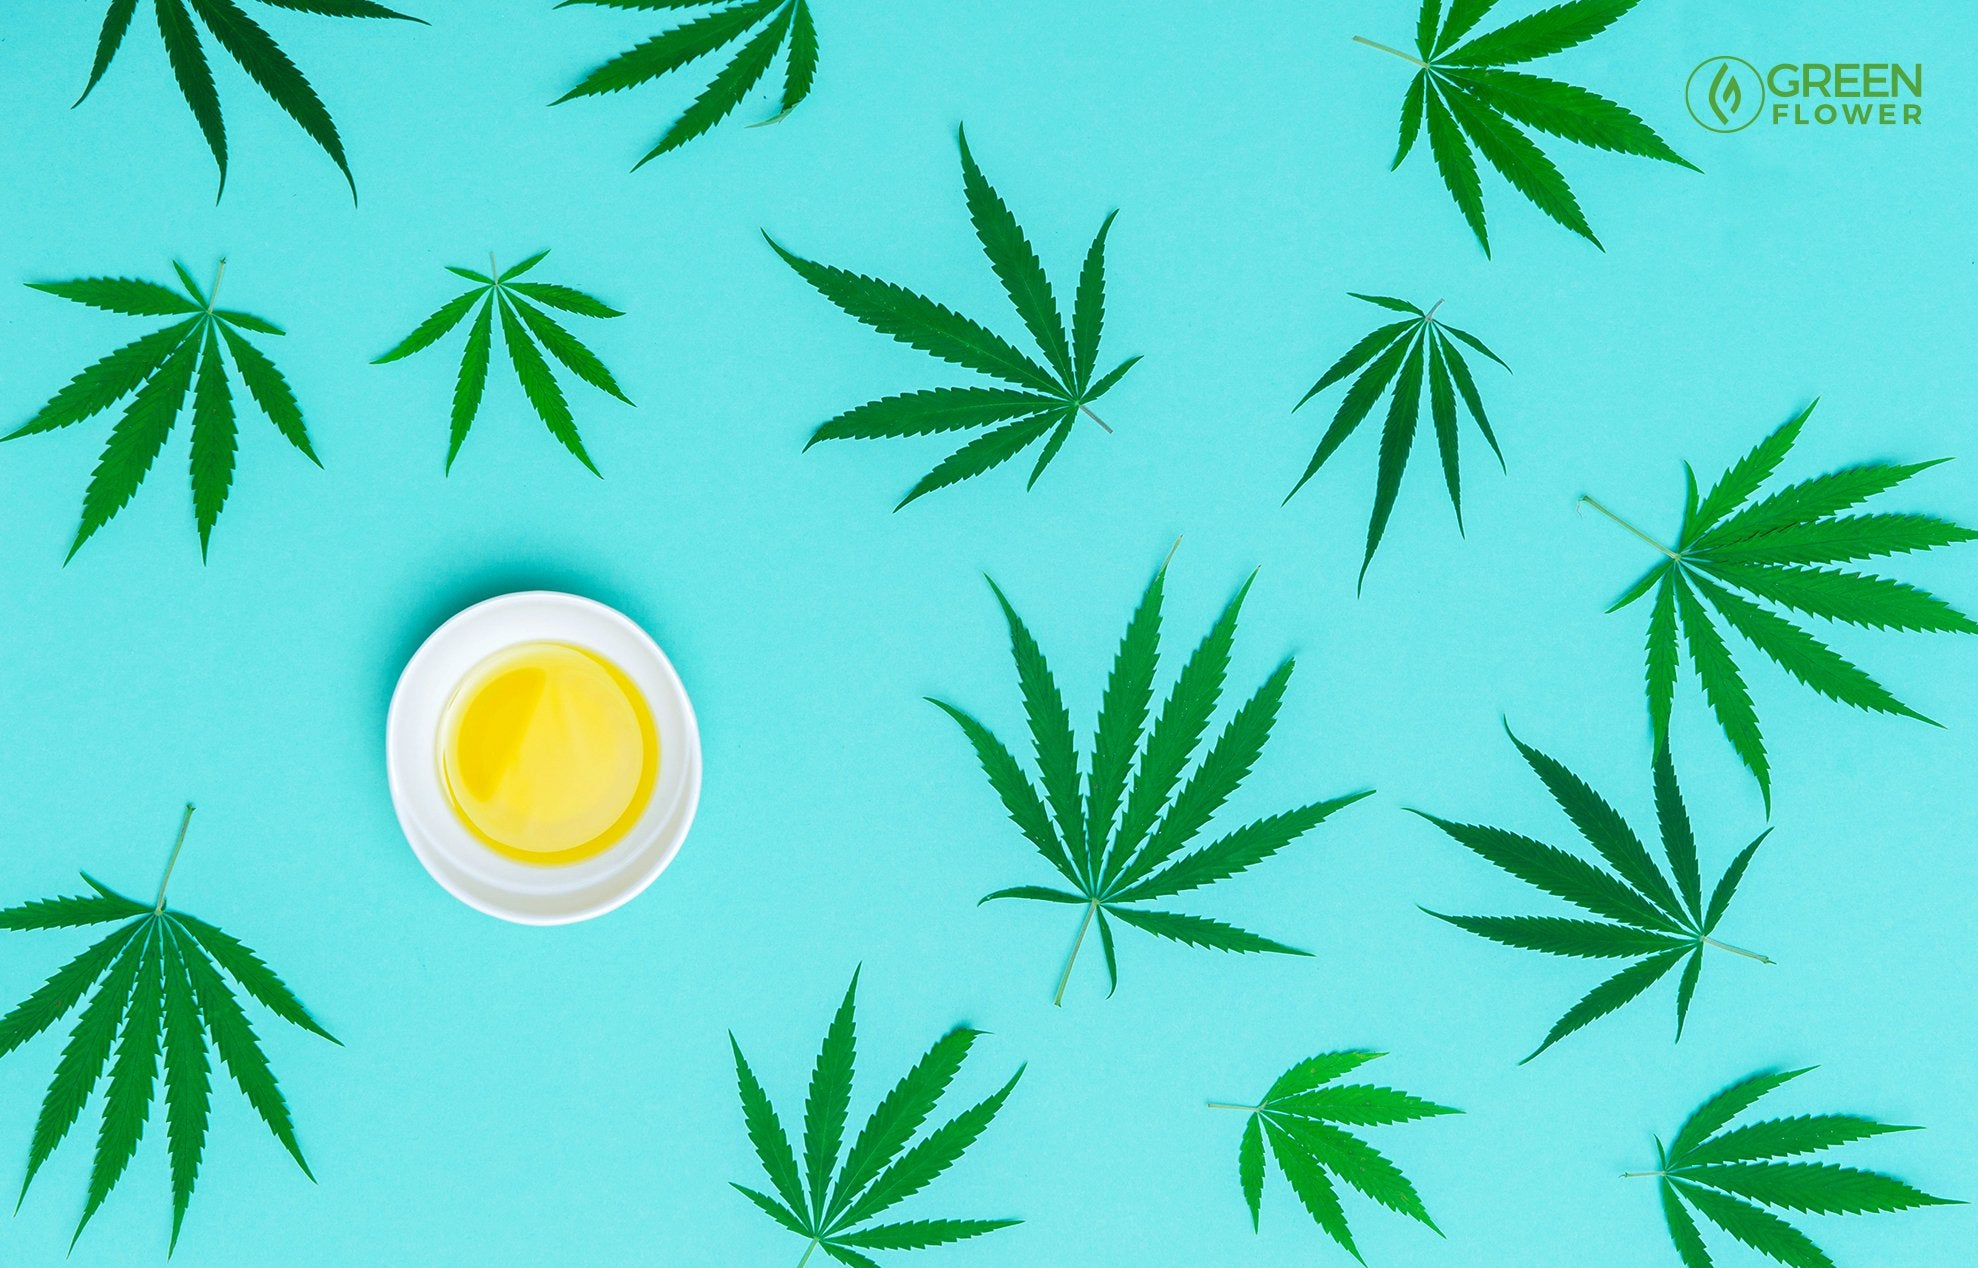 How To Make Canna Oil For Edibles